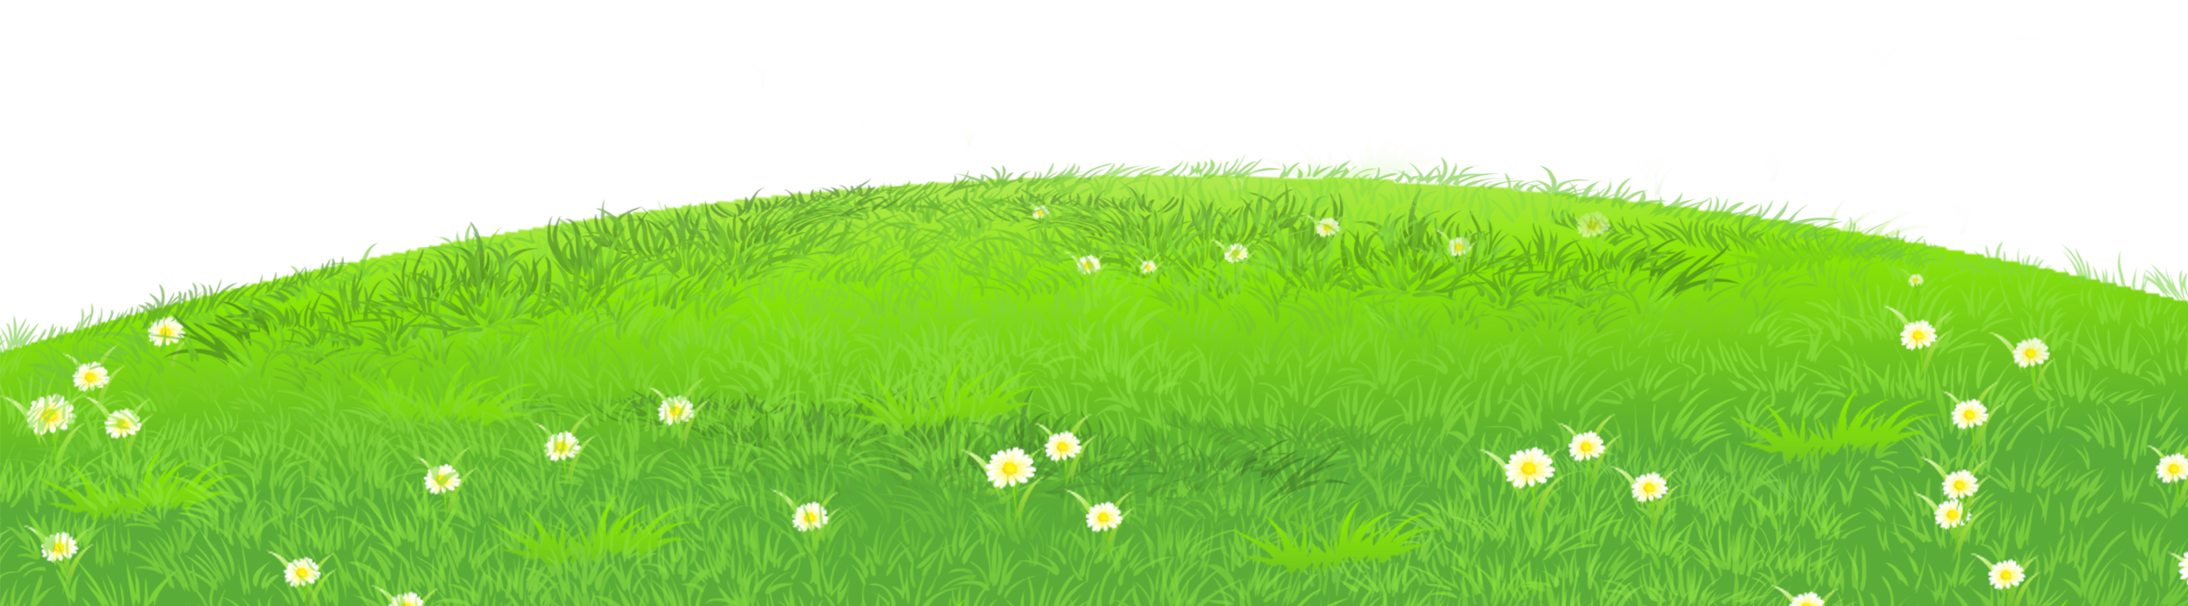 Field clipart. Free grass cliparts download